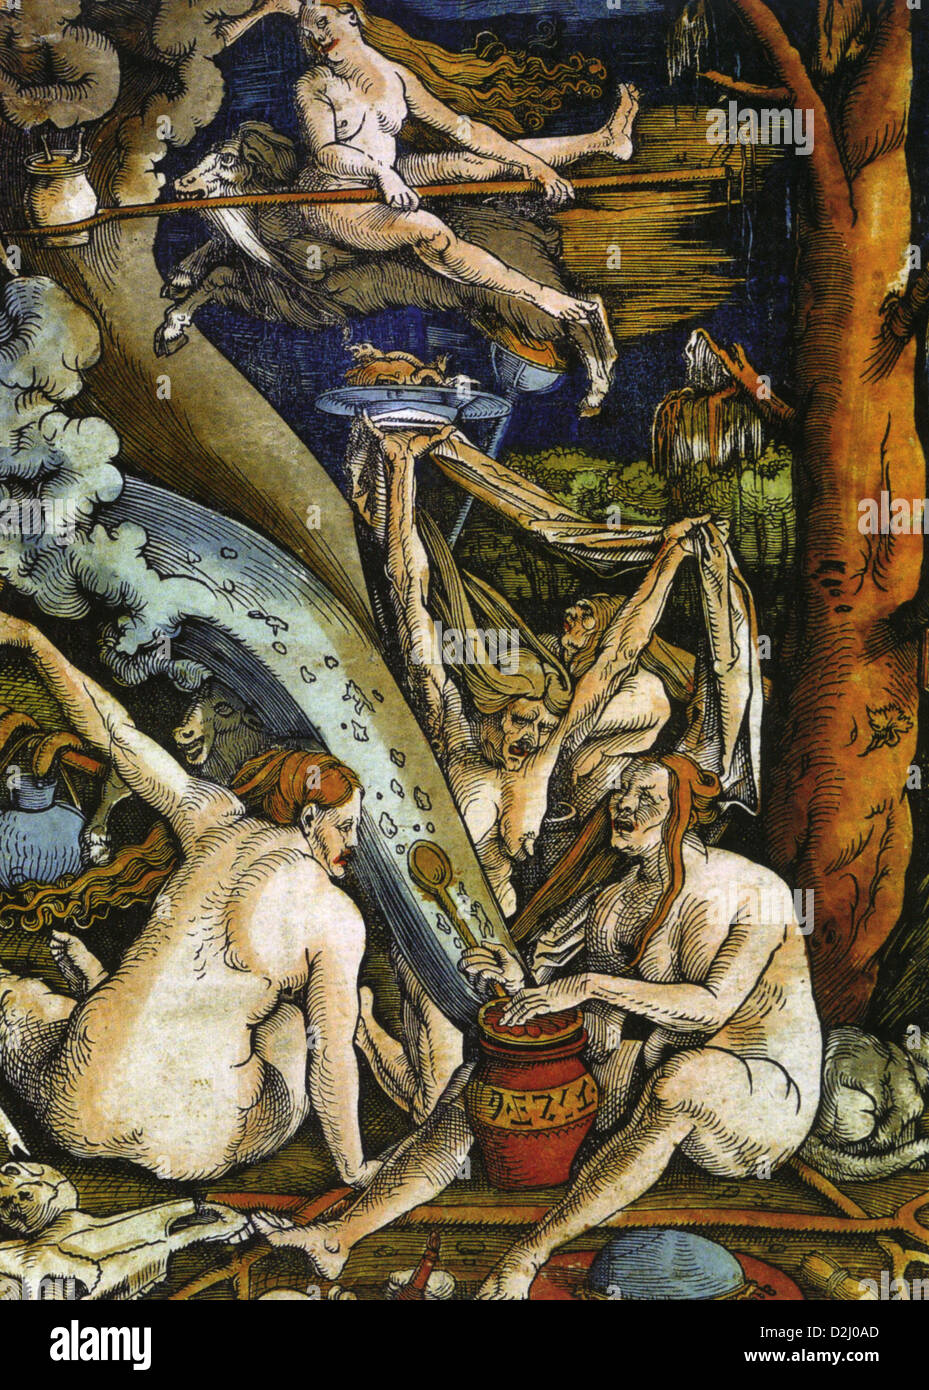 HANS BALDUNG GRIEN ( c 1484-1545) German artist's 1506 coloured woodcut of Witches - Stock Image